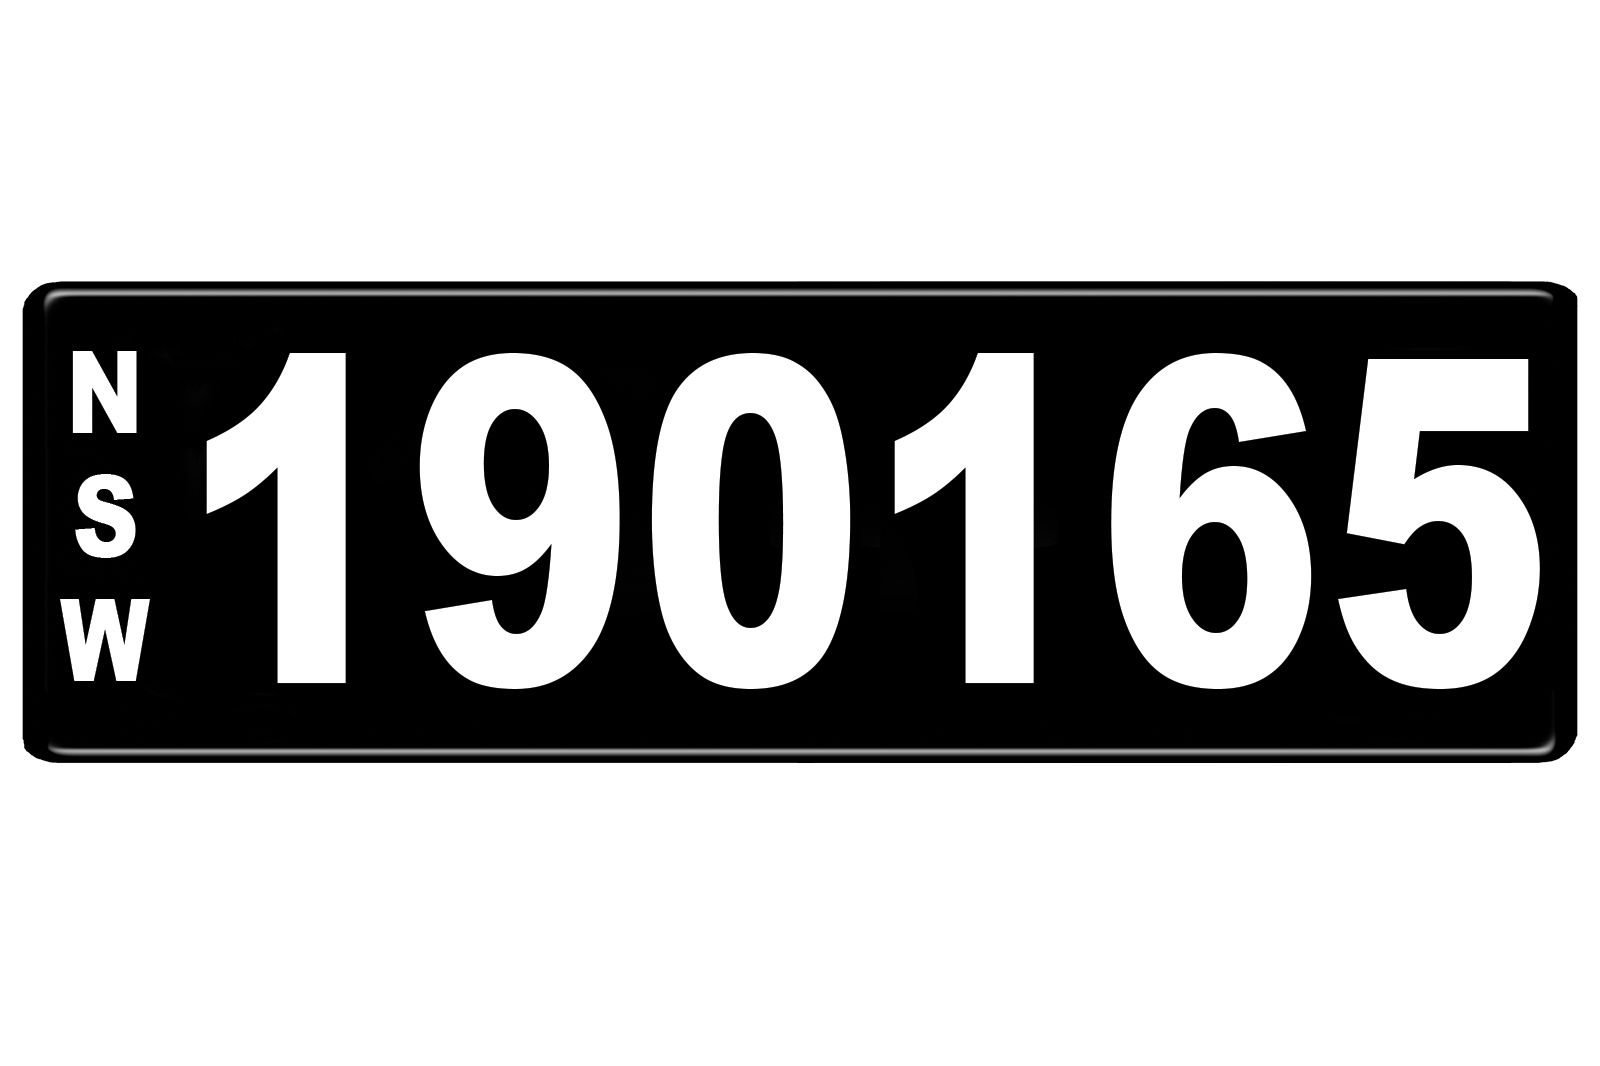 Number Plates - NSW Numerical Number Plates '190165'